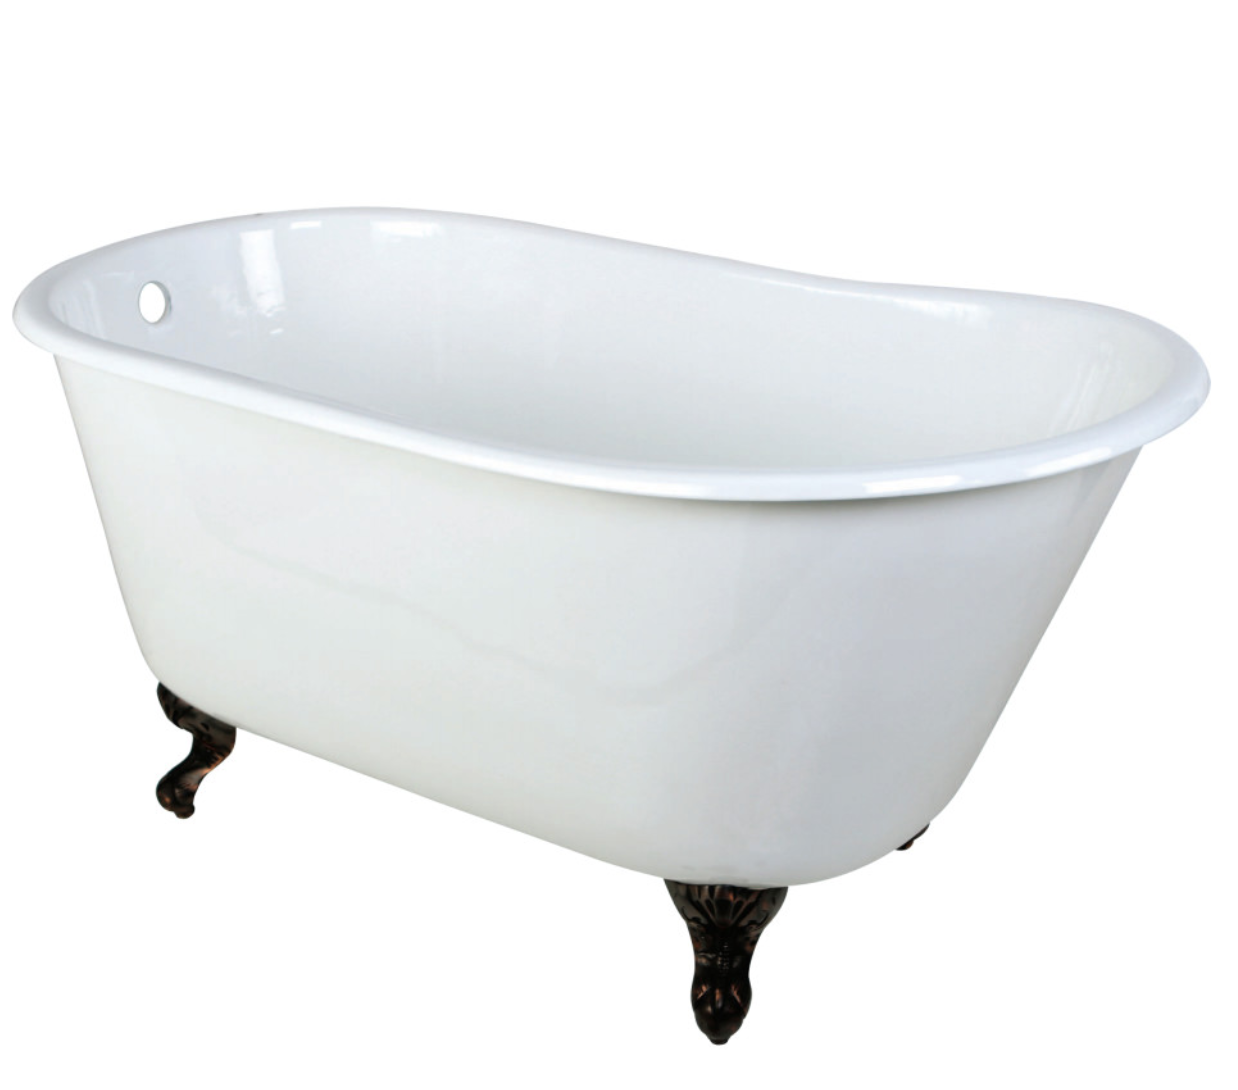 Kingston Brass Aqua Eden Cast Iron Clawfoot Bathtub